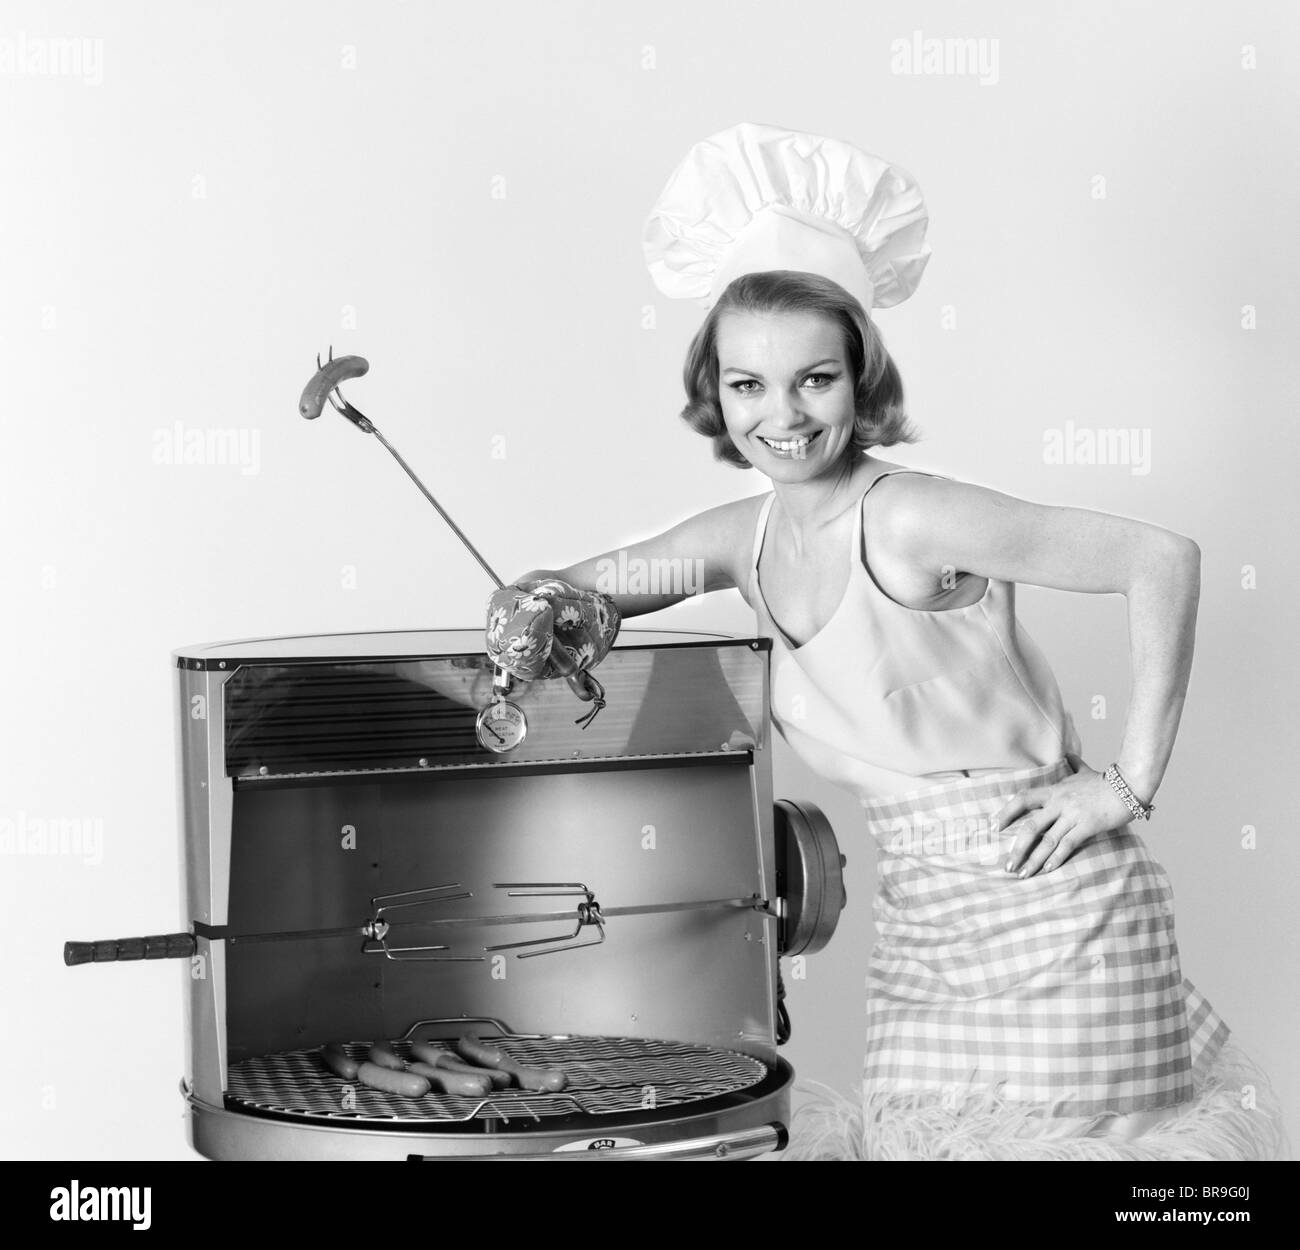 1960s WOMAN WEARING CHEF HAT STANDING AT BBQ GRILL HOLDING A FORK WITH HOT DOG - Stock Image